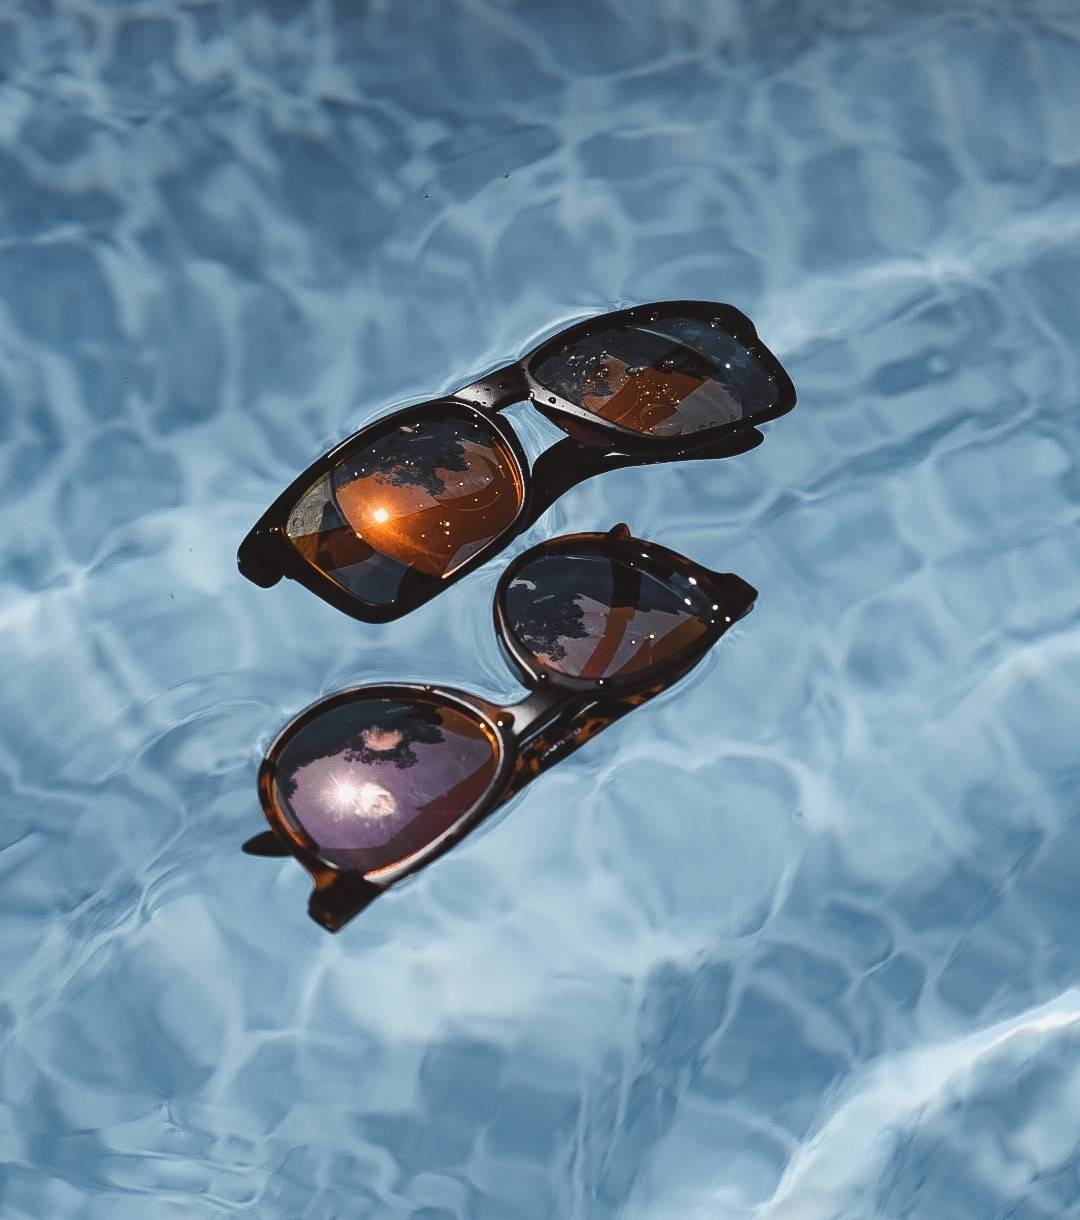 Two pairs of Rheos sunglasses float perfectly in the water.